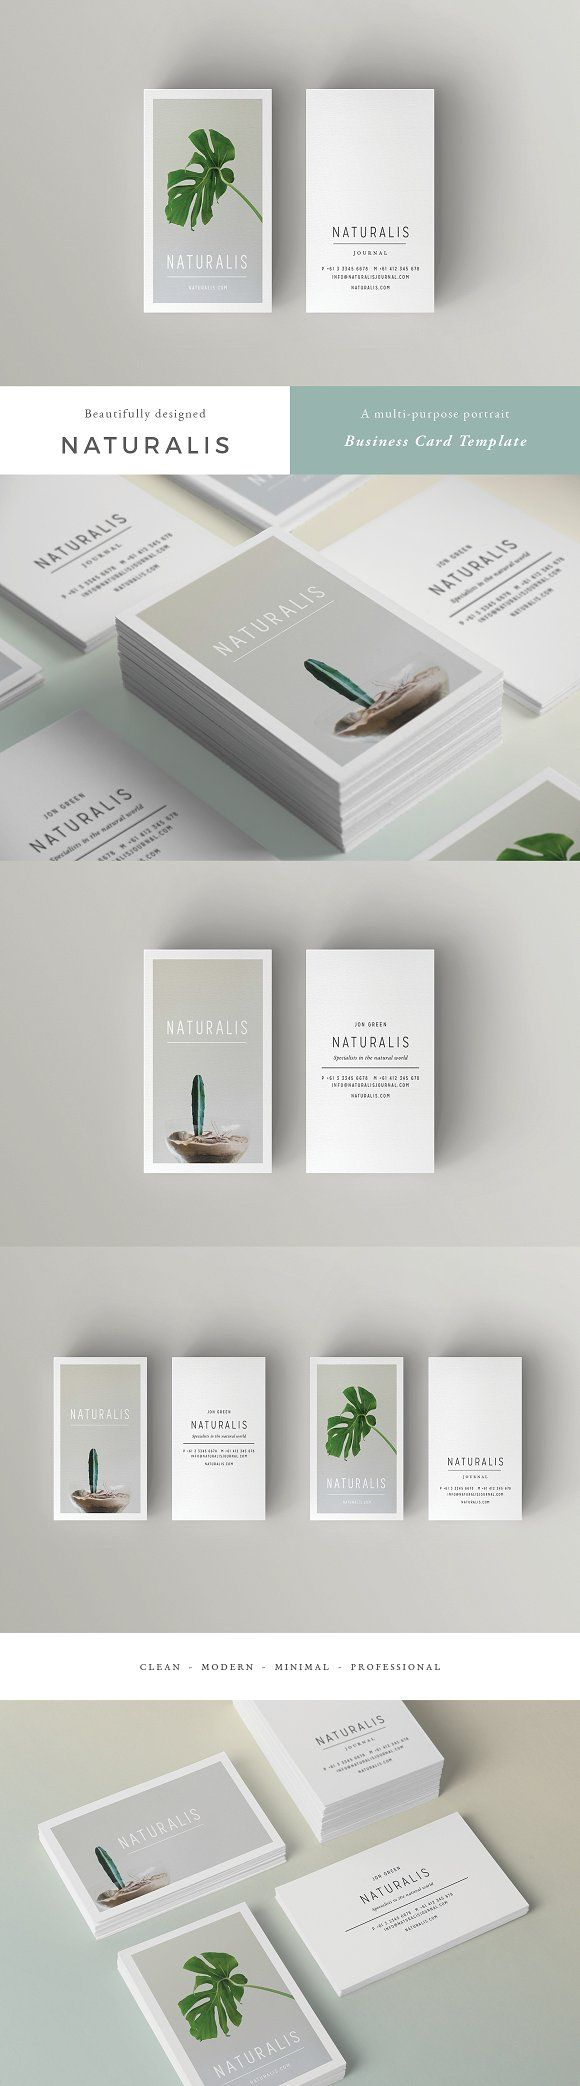 NATURALIS Business Card Template by 46&2 Collective on @creativemarket  A beautiful multipurpose business card template, perfect for your next project and any brand identity. Clean, modern and fully customisable. Ideal for personal identity, professional branding, advertising, calling cards, launches, events, invites and more.  Landscape AND portrait options. 4 design variations to choose from all up, feel free to mix and match fronts and backs.